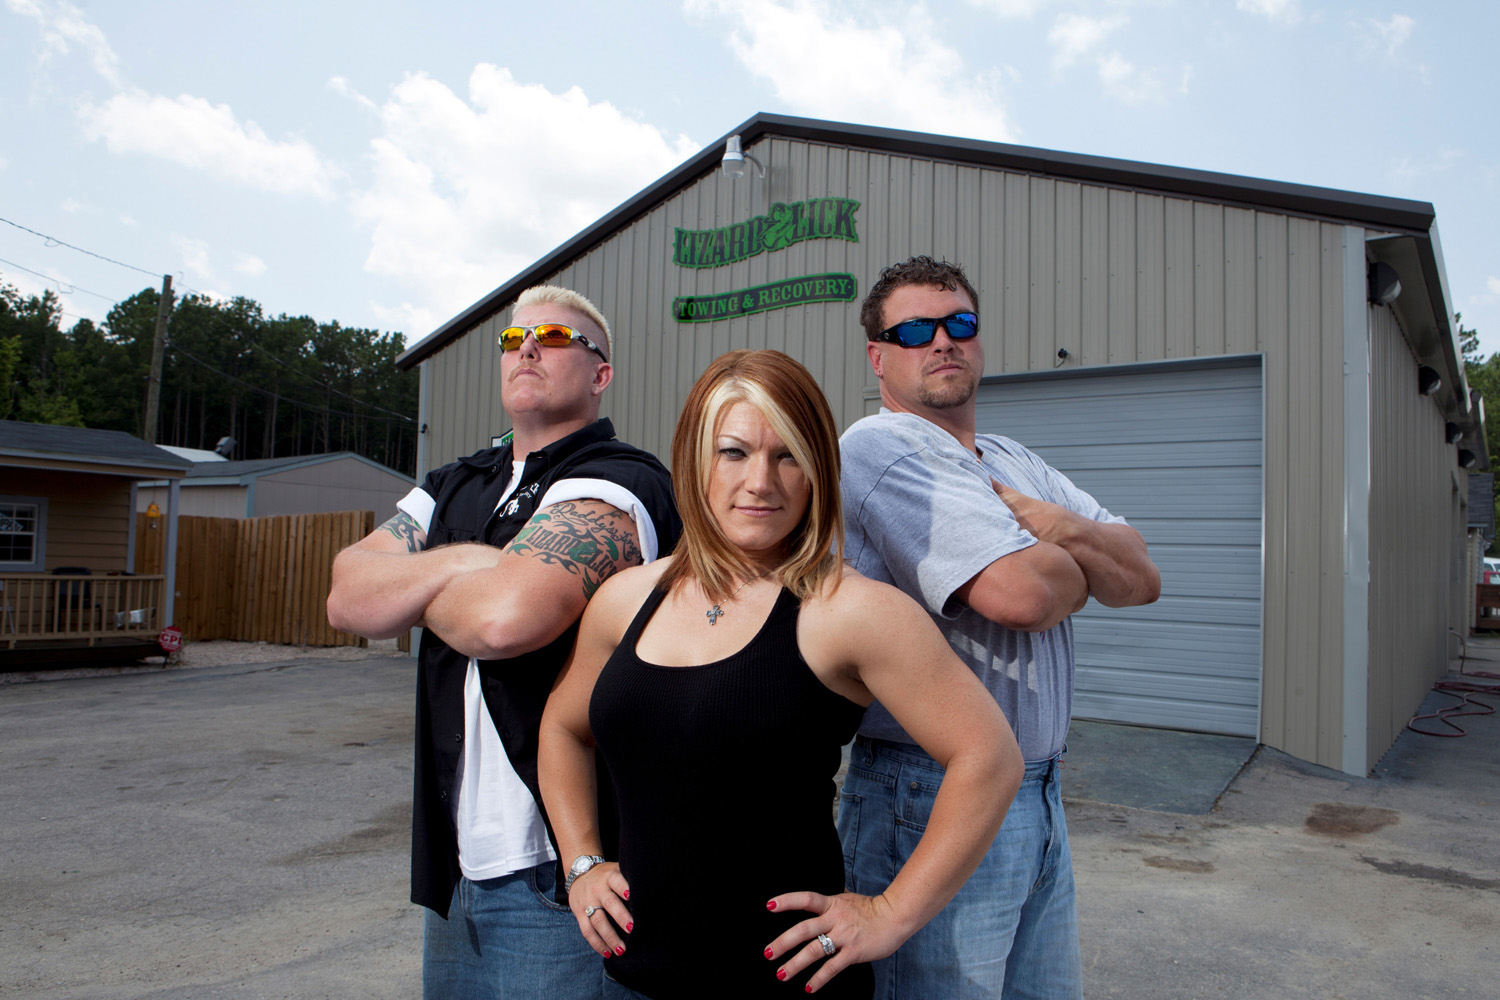 Amy Shirley is standing alongside her husband and a friend. She is wearing a tank top exposing her well toned body. Amy is facing straight at the camera with both her hands rested on her waist. Her husband stands on the left side of Amy with his arms folded and on the side stands a friend.